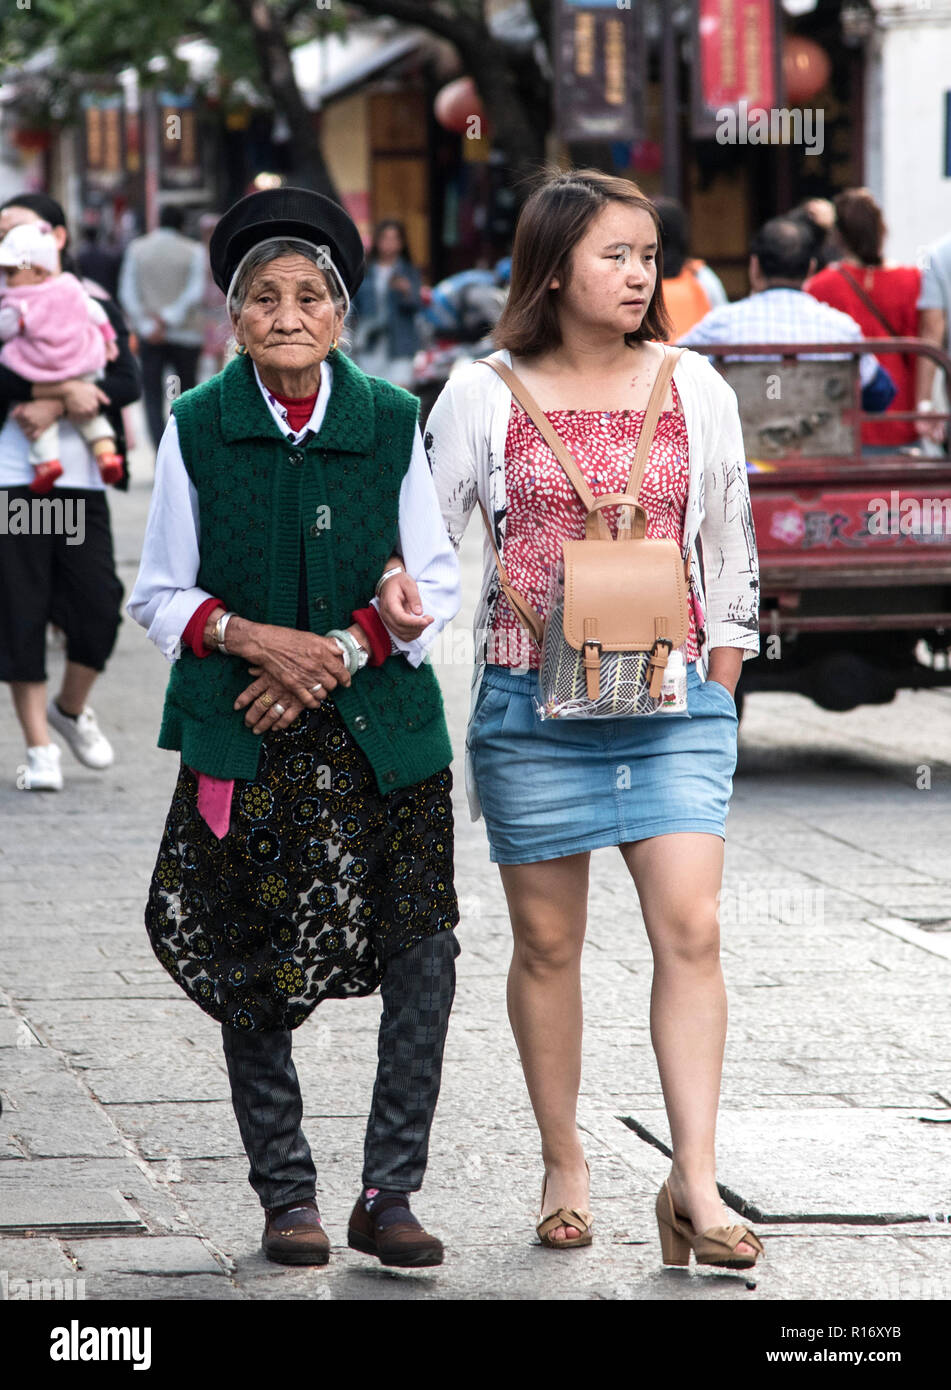 Old Chinese lady walking with young Chinese grand daughter in shopping district of Dali South West China. - Stock Image